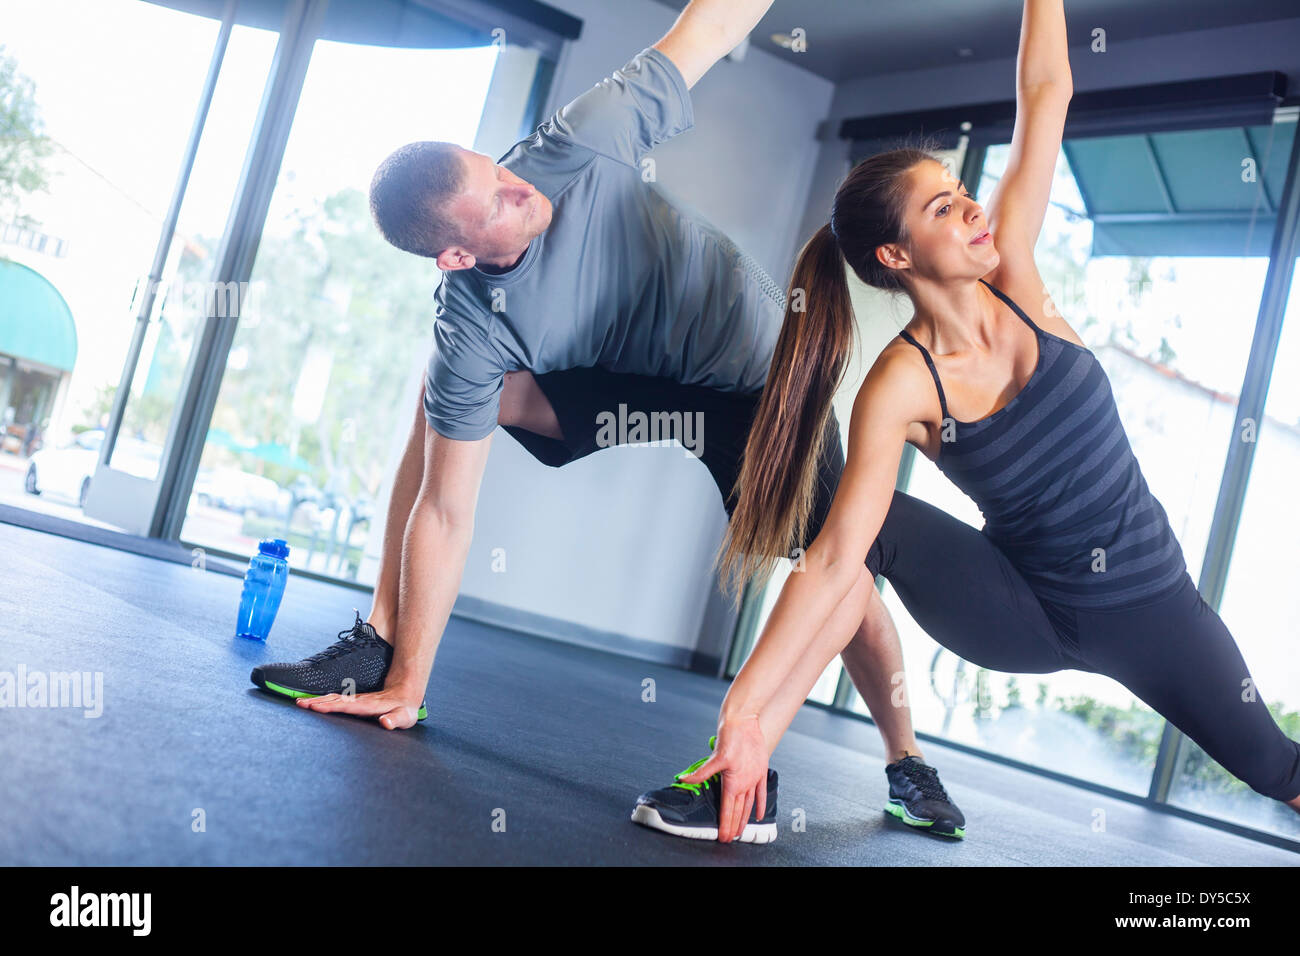 Couple in triangle pose - Stock Image